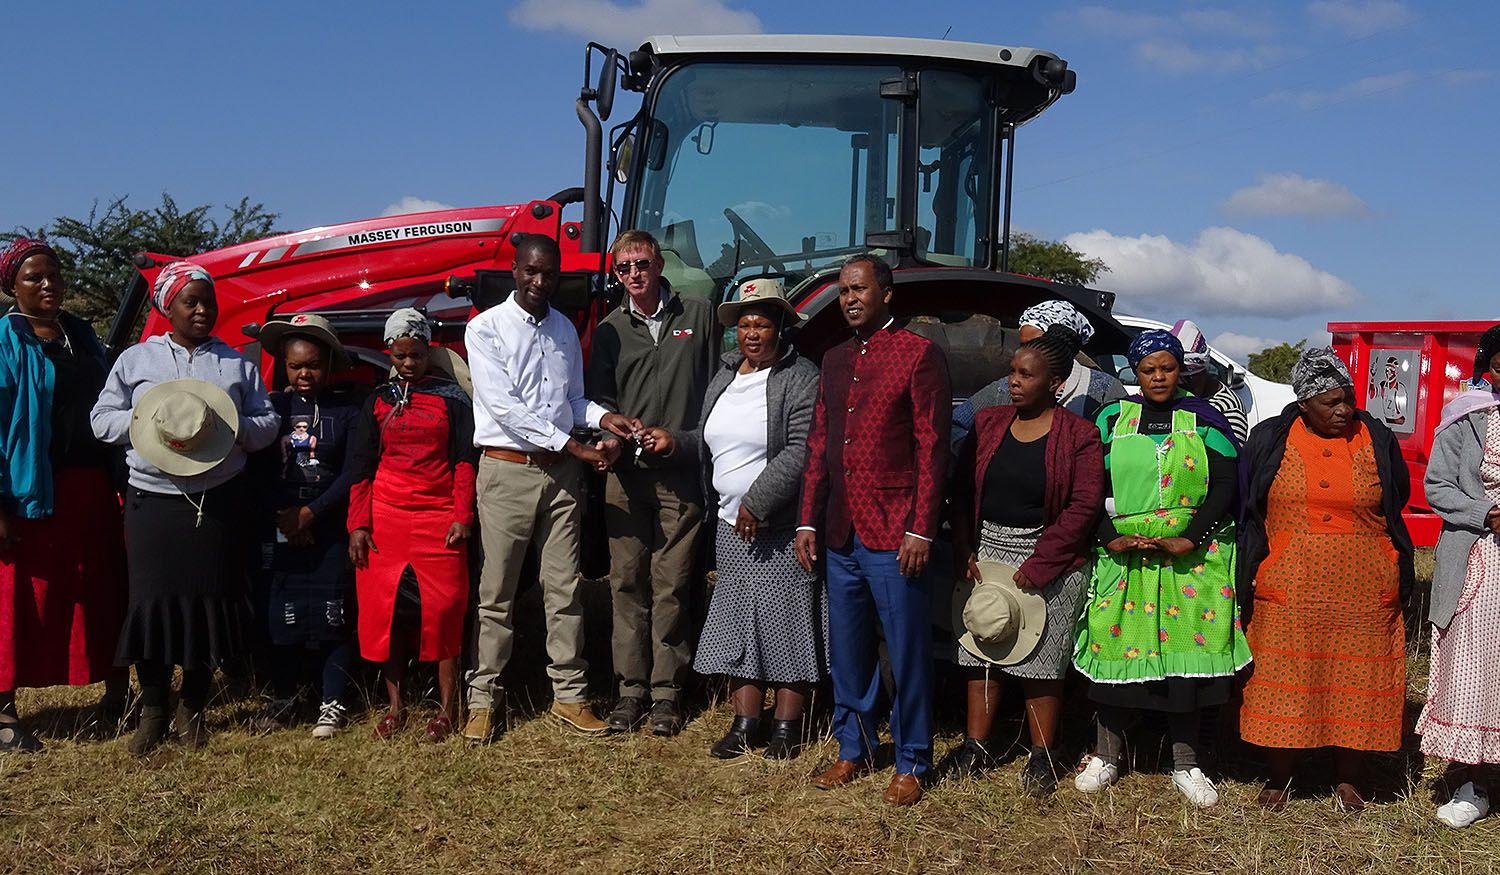 uMsinga emerging farmer invests in high-tech agriculture solutions that will benefit local women-run farming cooperatives